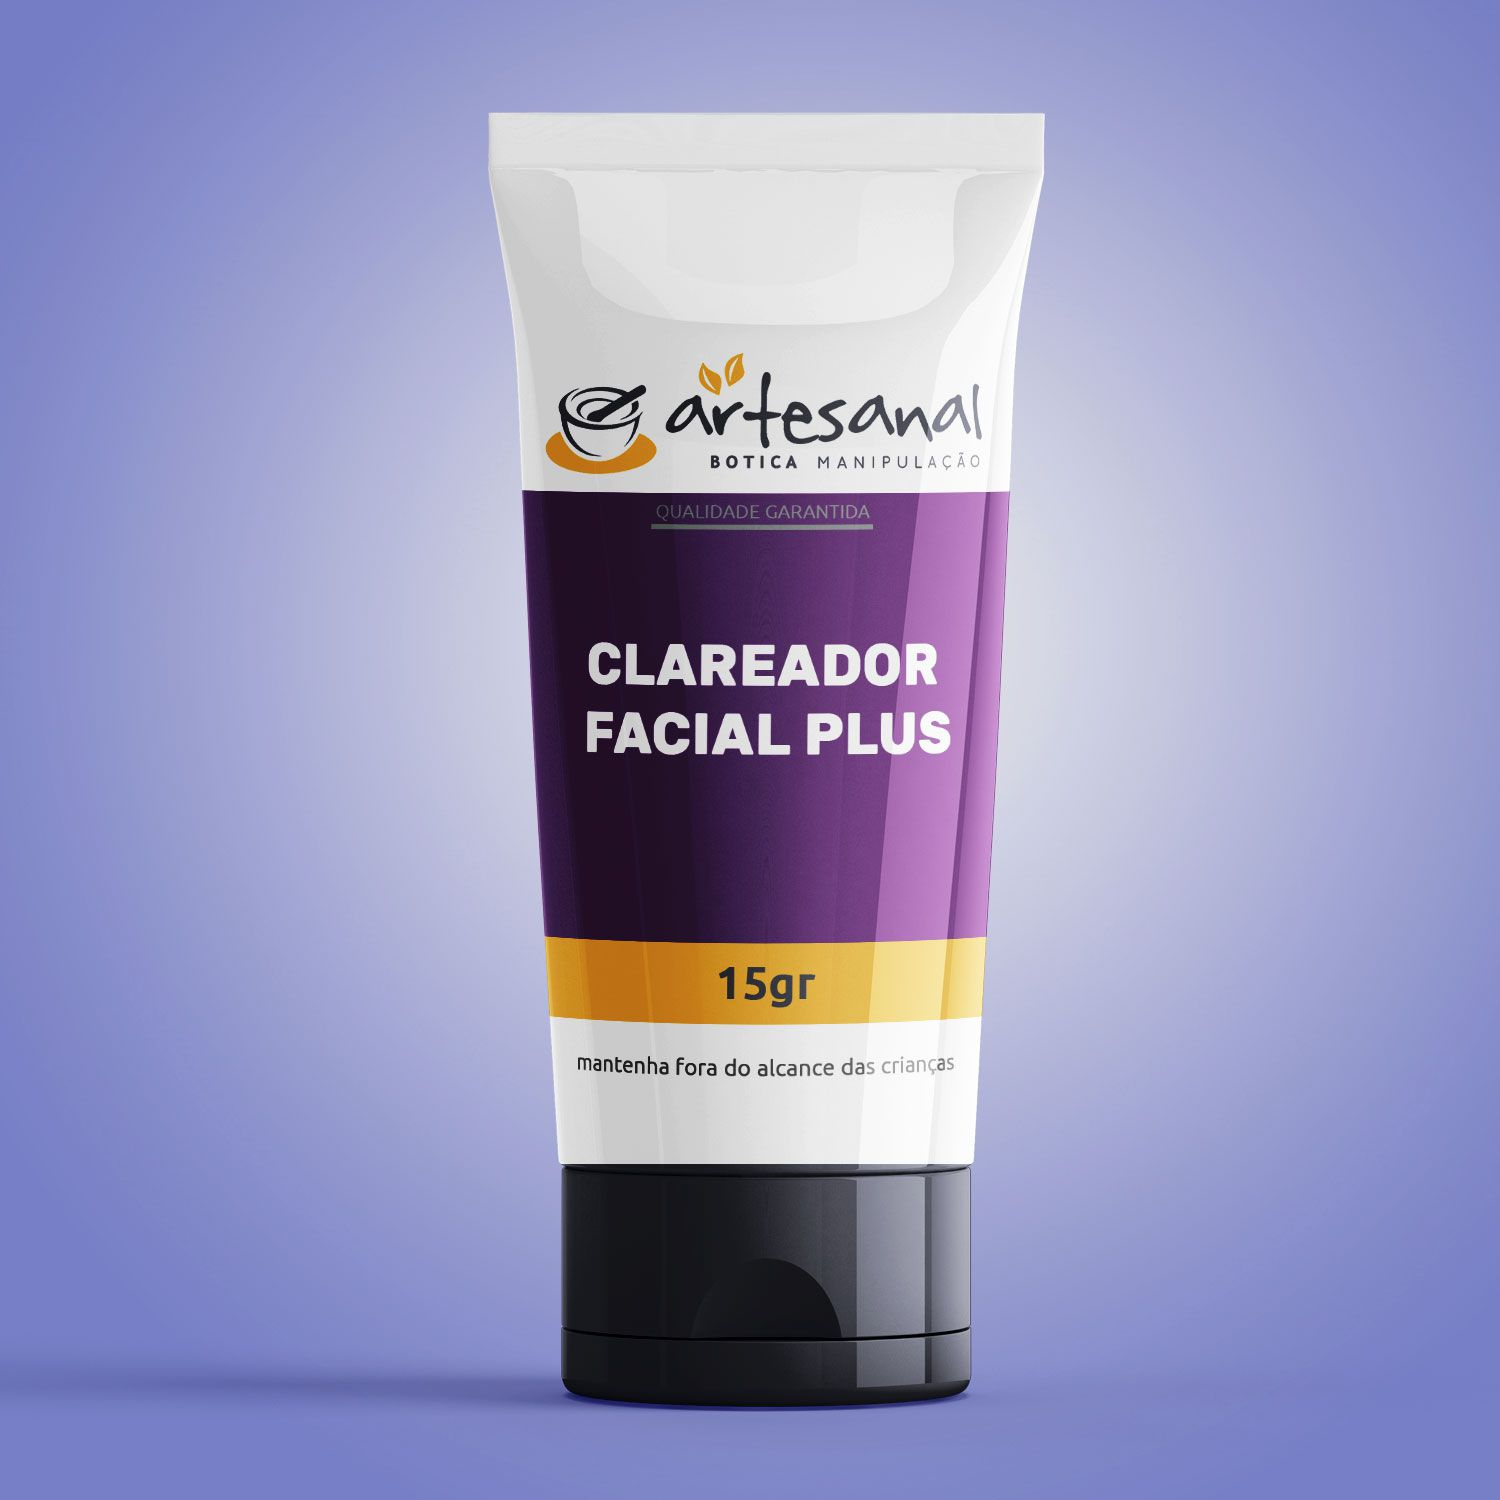 Clareador Facial Plus - 15g